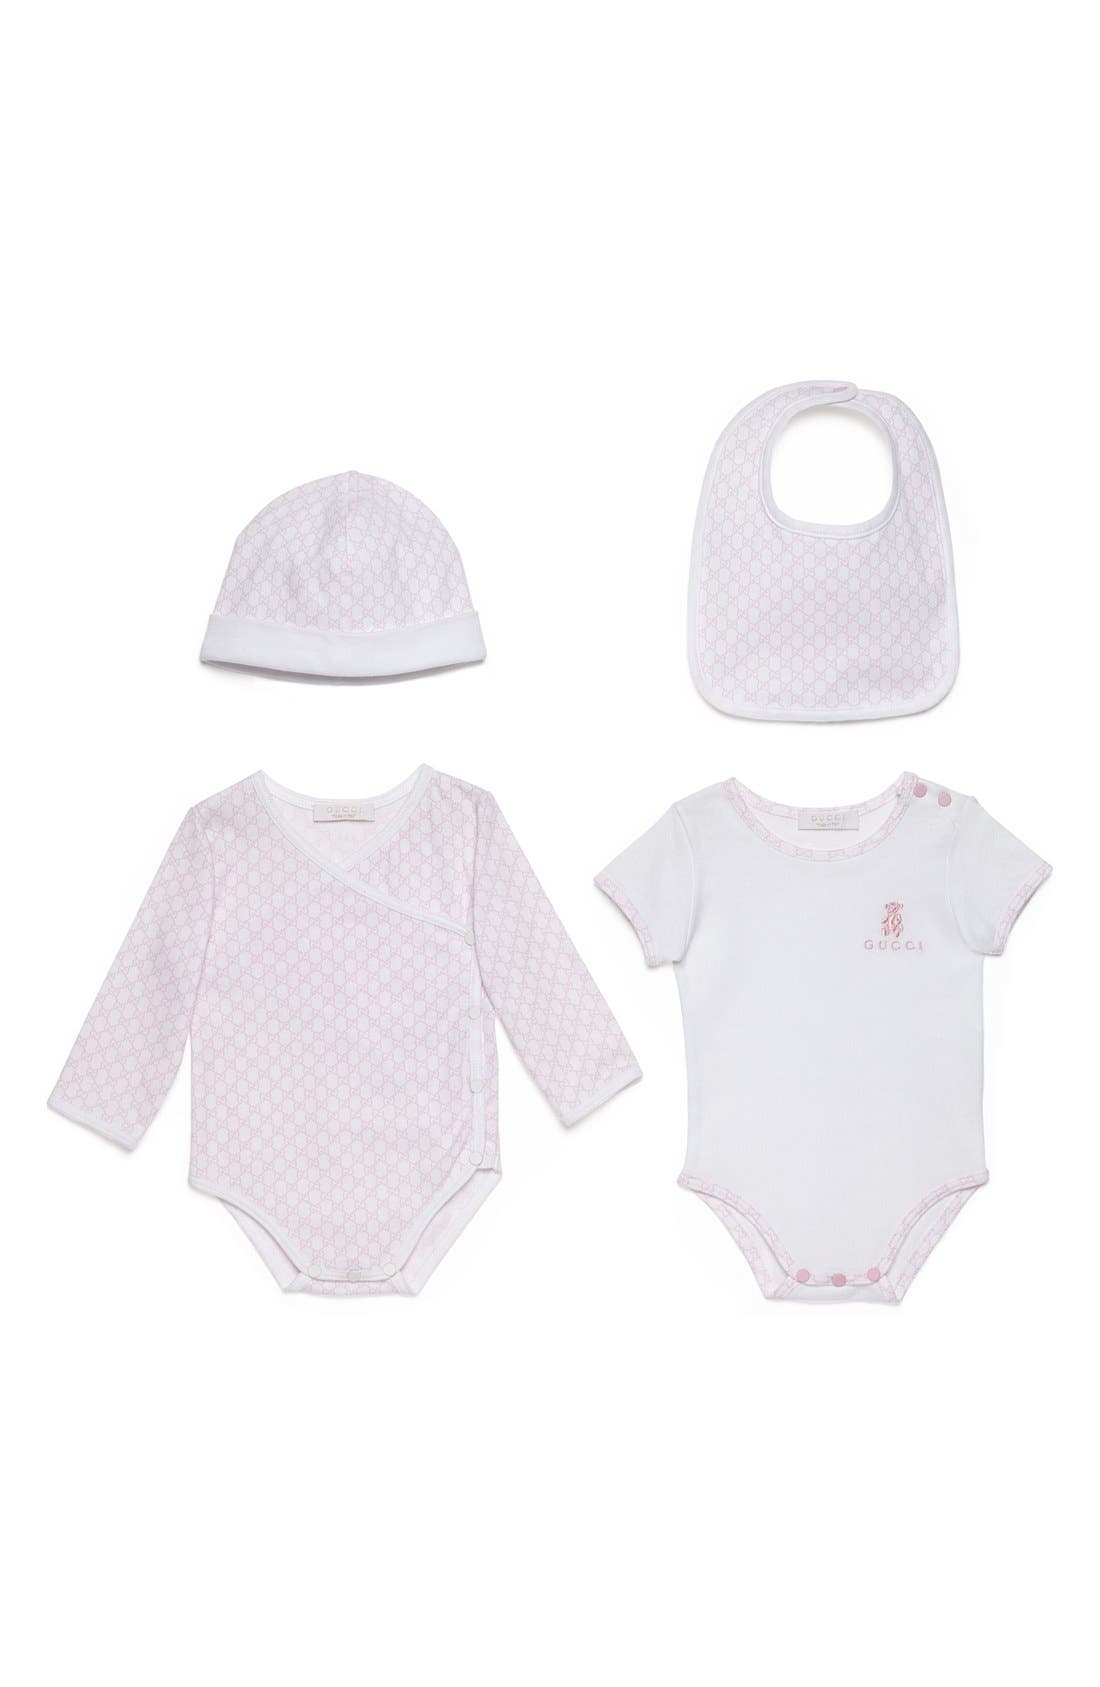 Main Image - Gucci Short Sleeve Bodysuit, Long Sleeve Bodysuit, Hat & Bib Set (Baby)